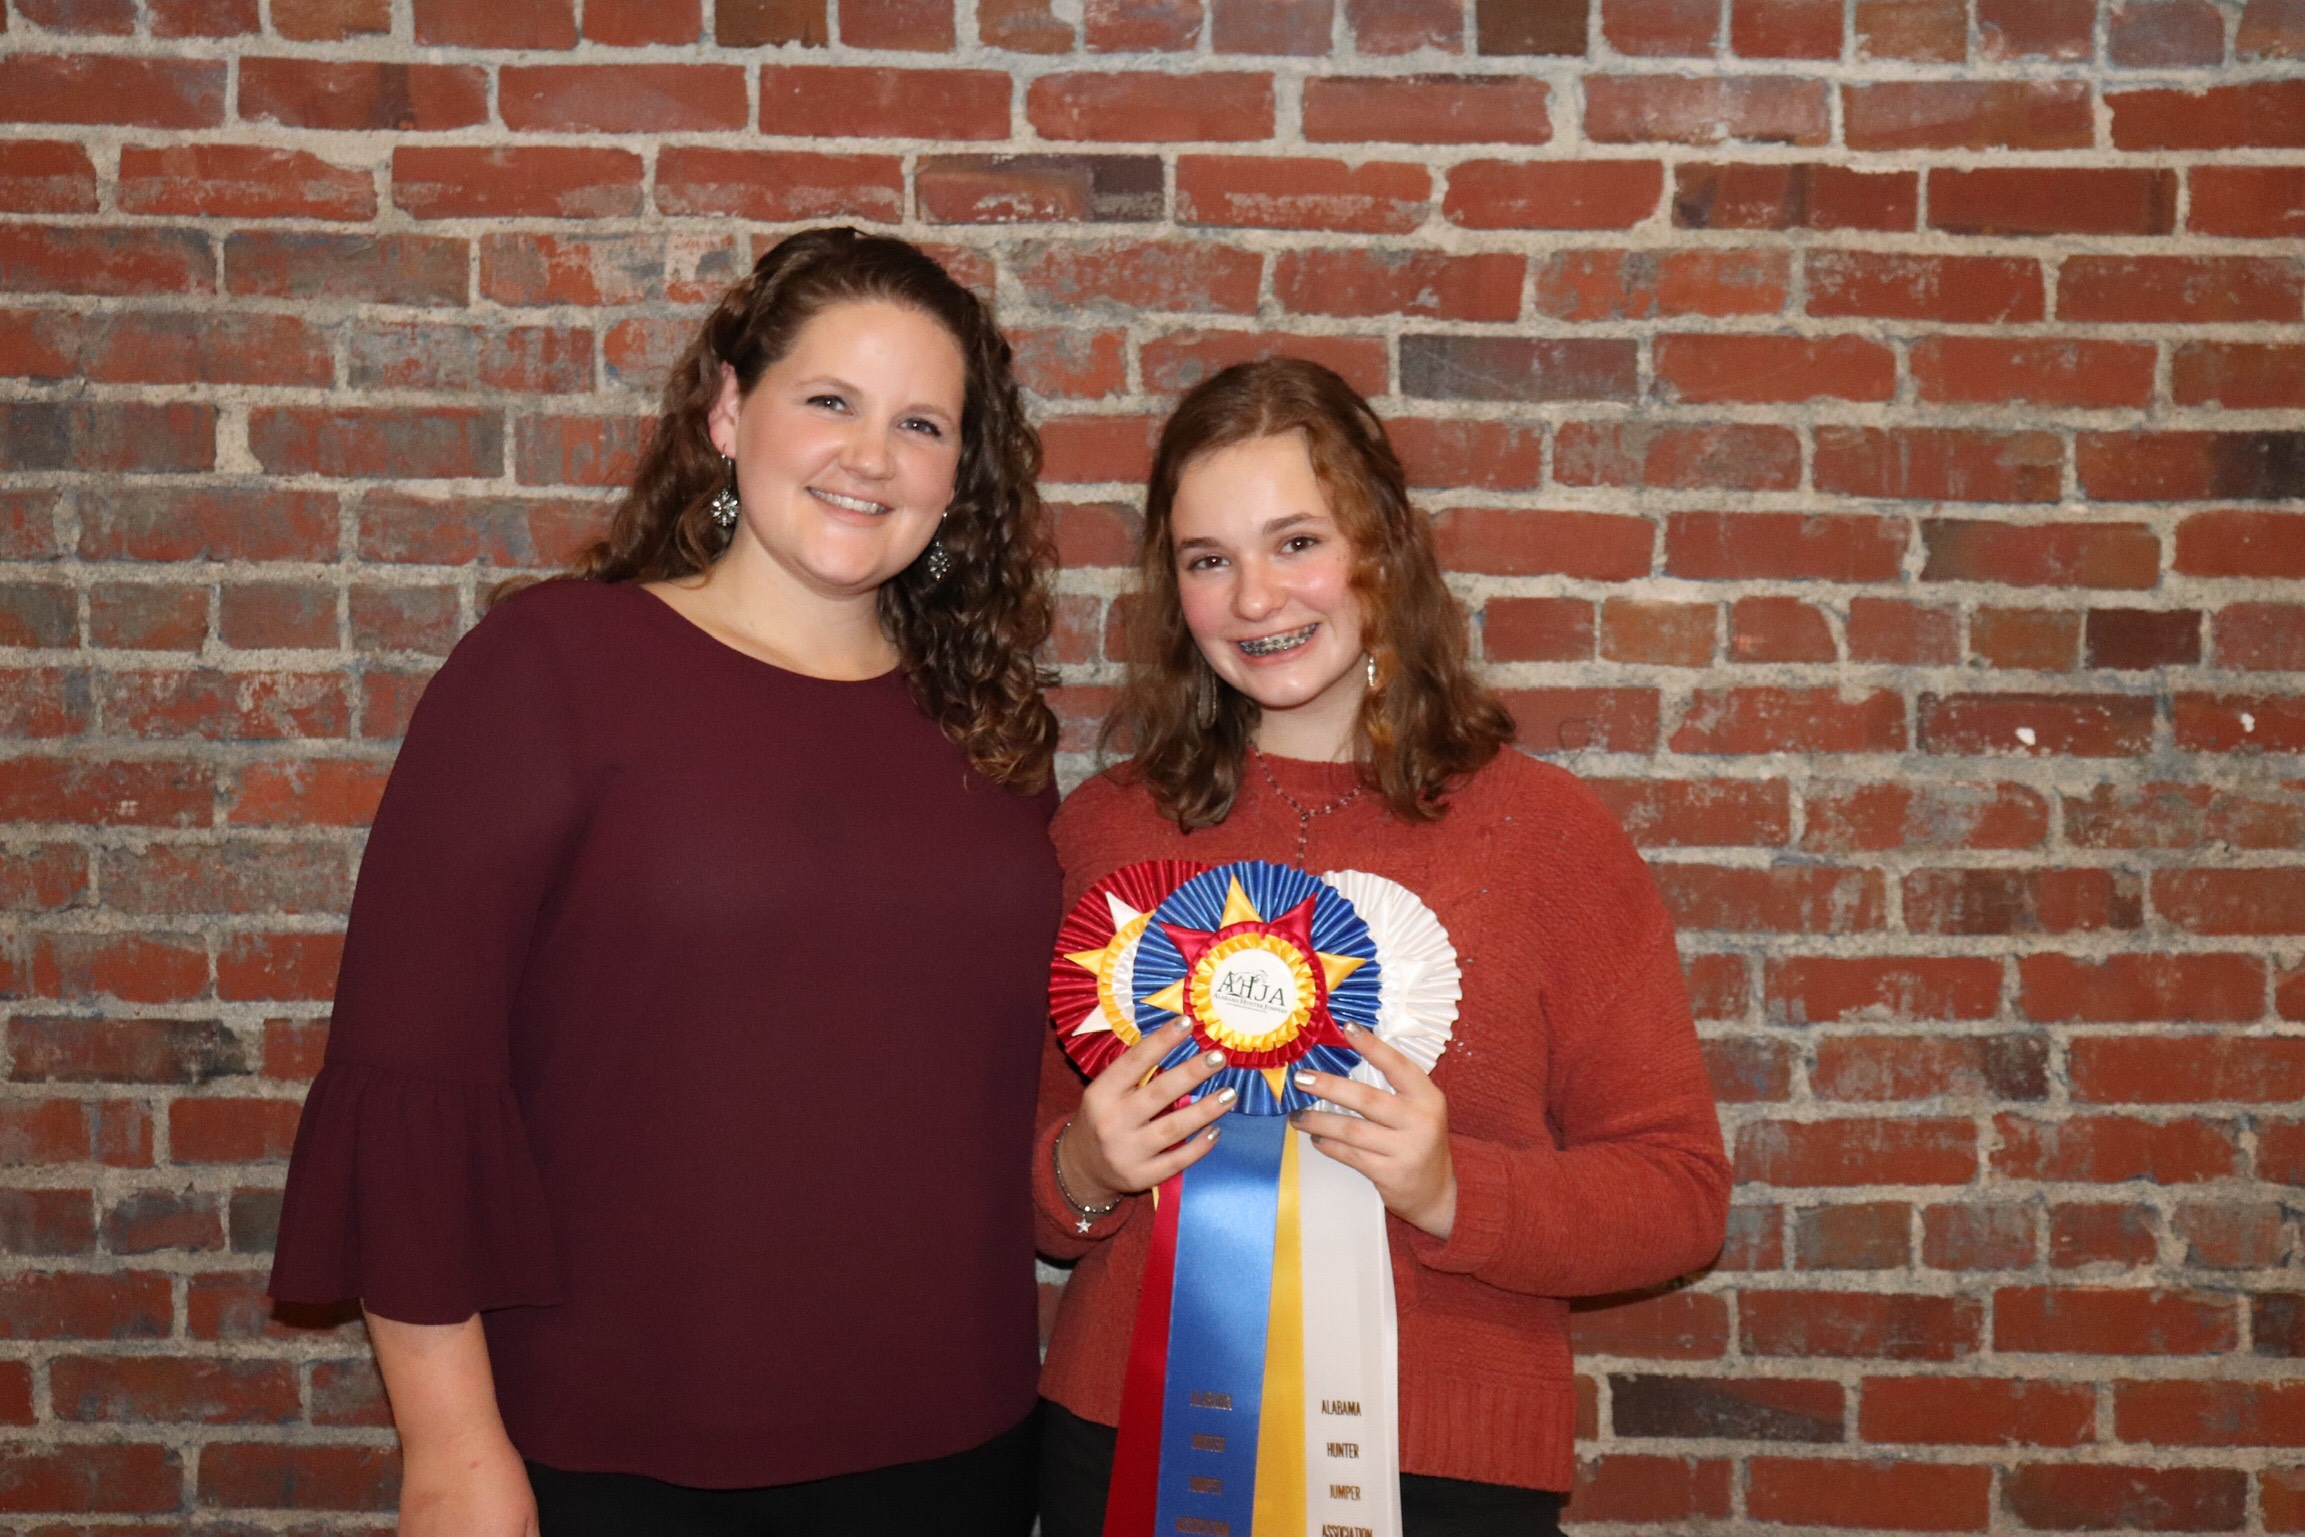 Kate and Dax had a successful show year.